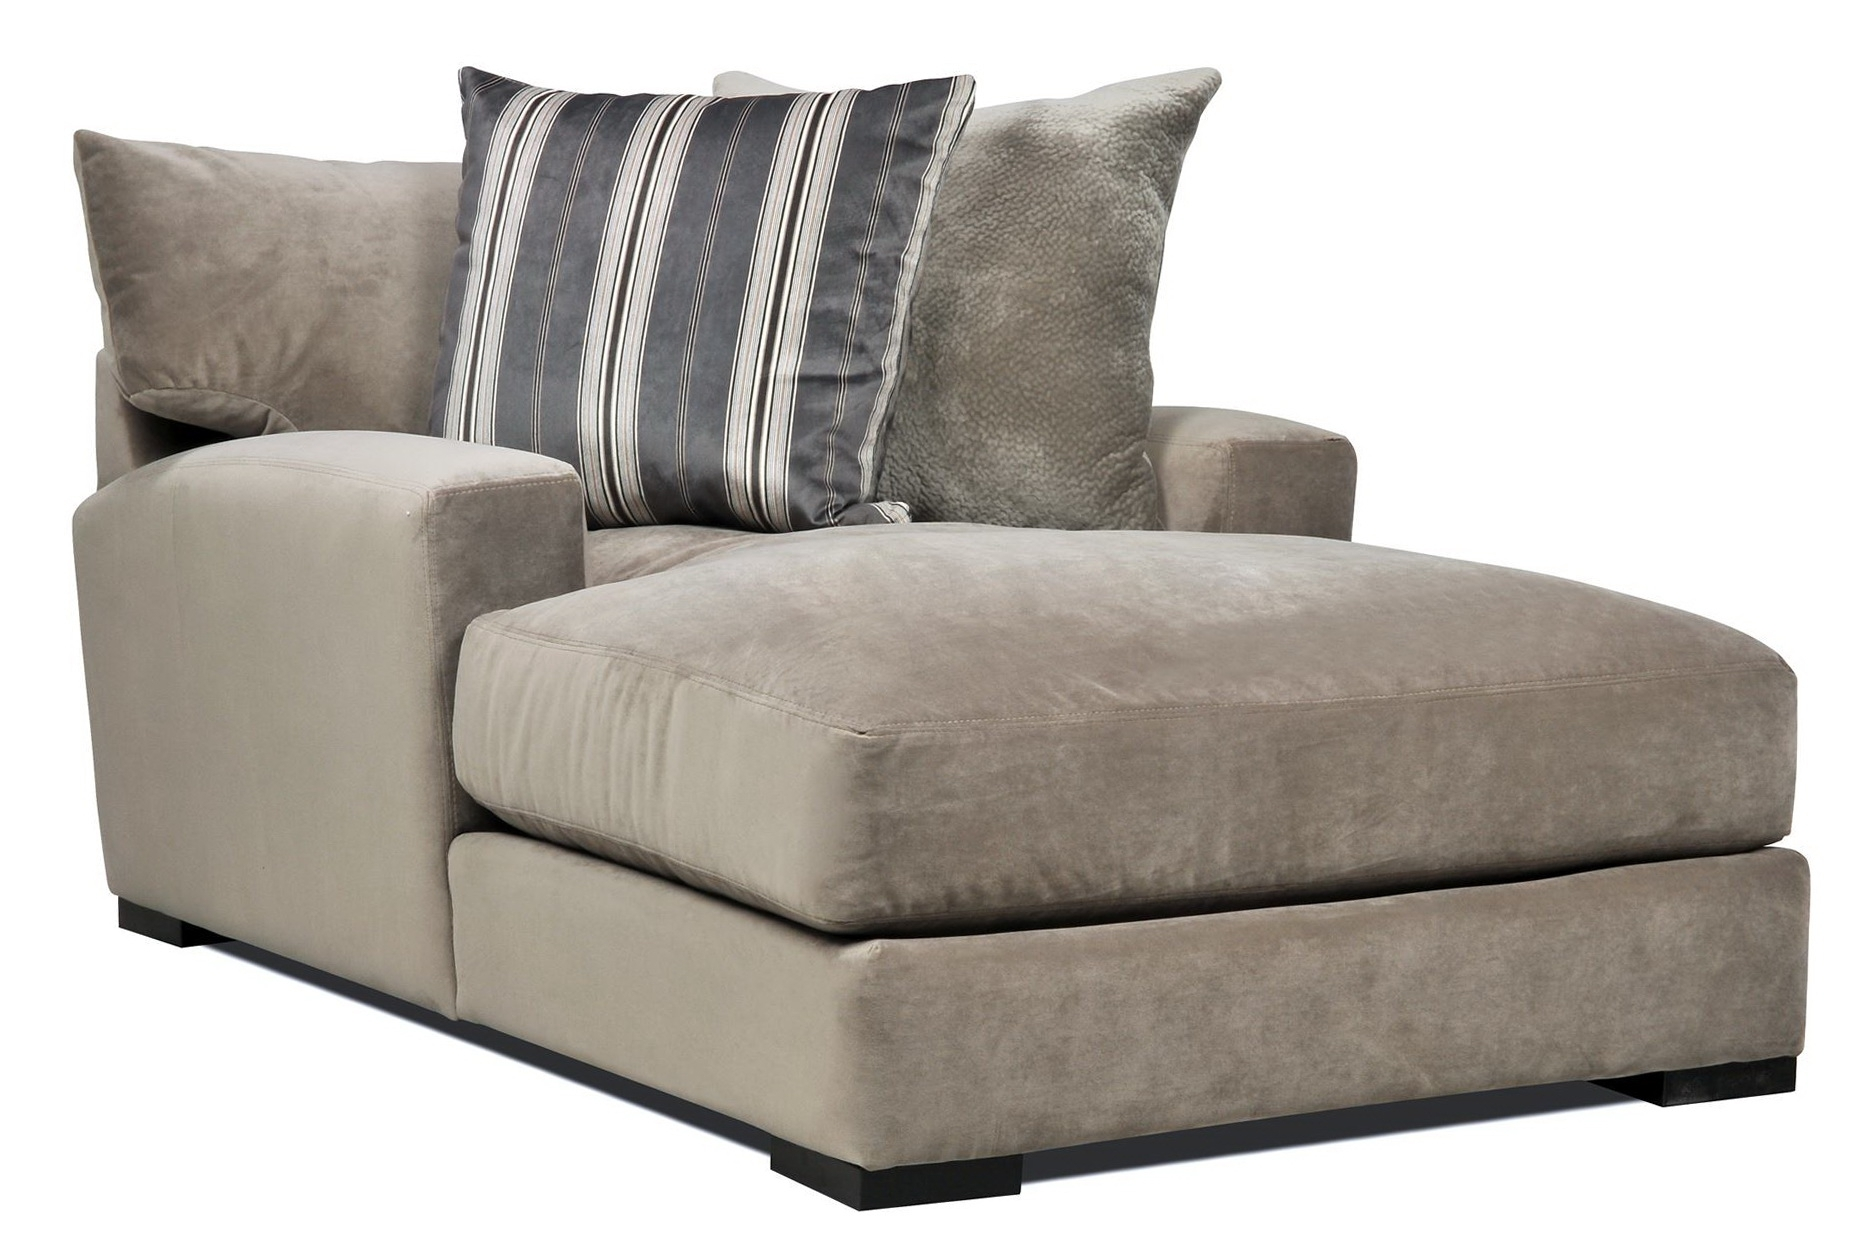 Jannamo pertaining to Cheap Chaise Lounge Chairs